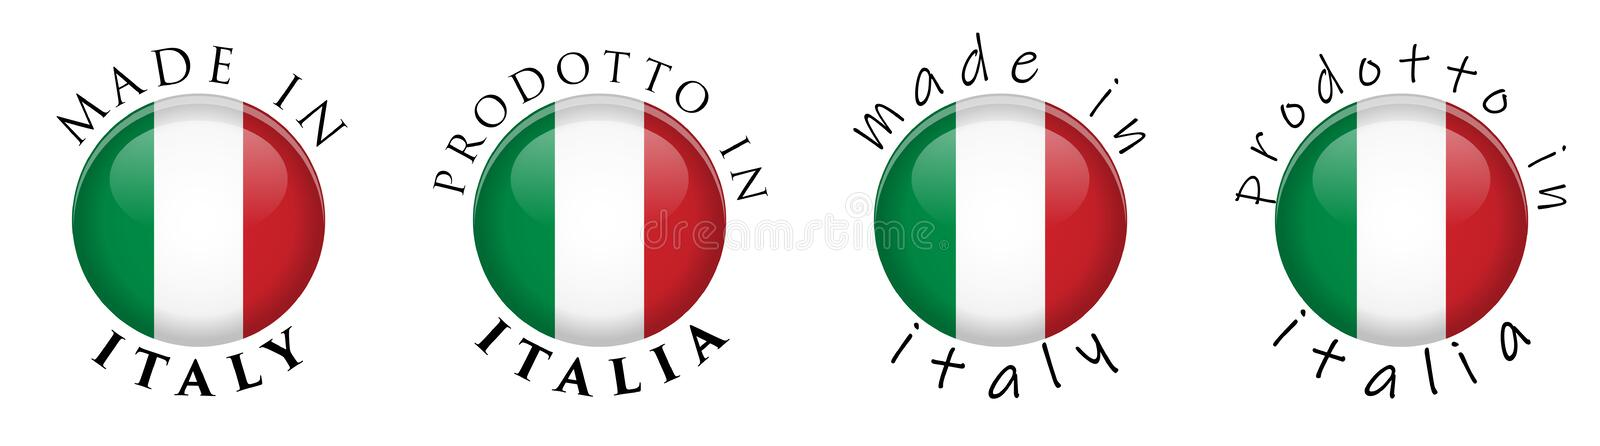 Translator Italian: Symbol Of Italian Manufacture Stock Illustration